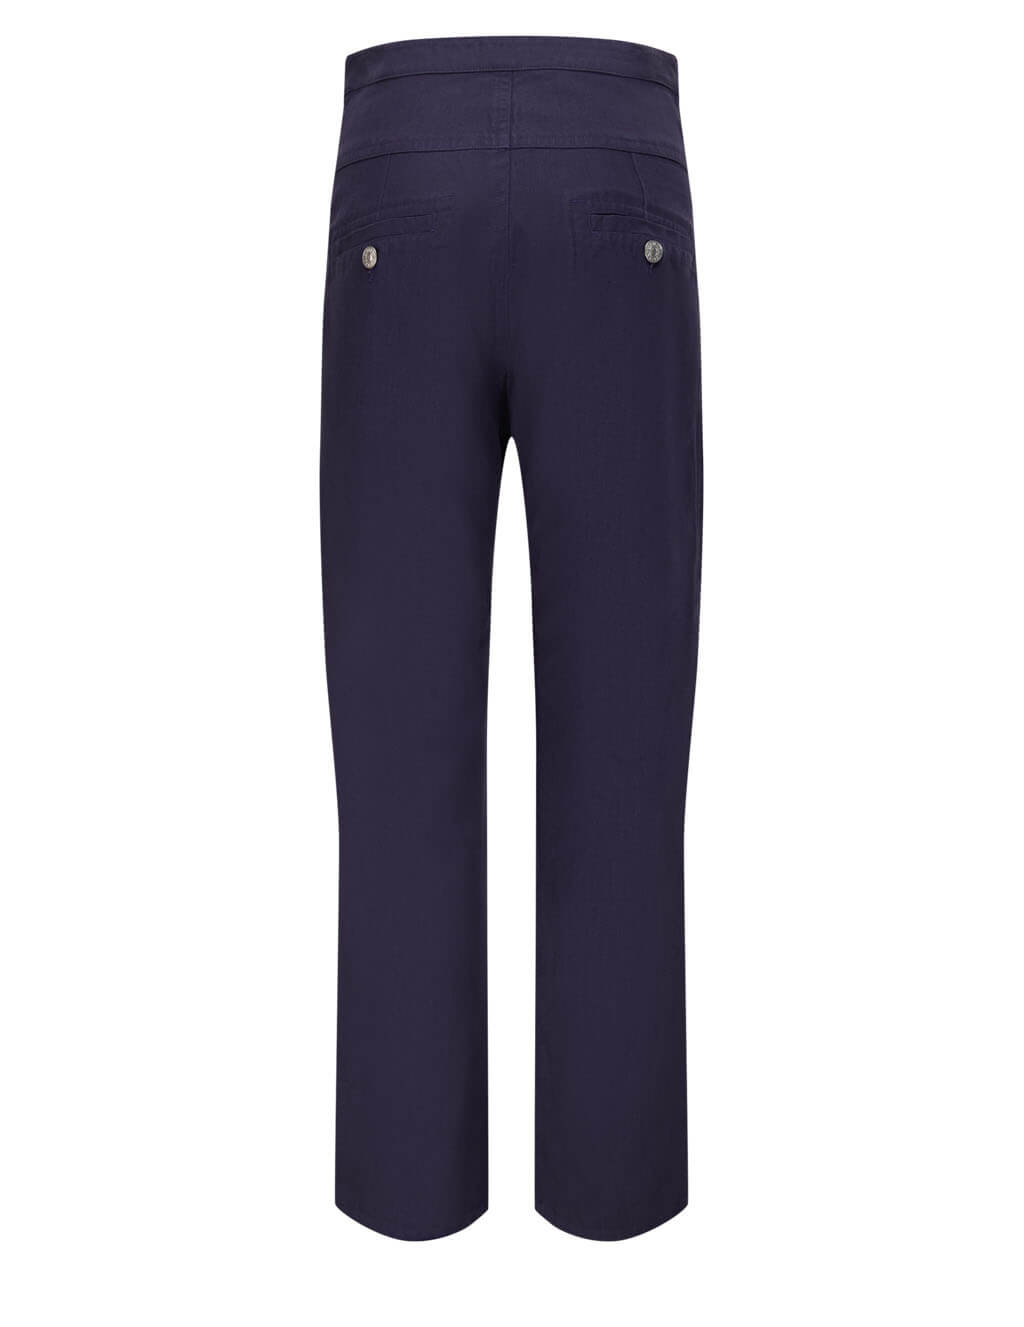 Women's Isabel Marant Etoile Phil Trousers in Faded Night - PA184821P004E30FN